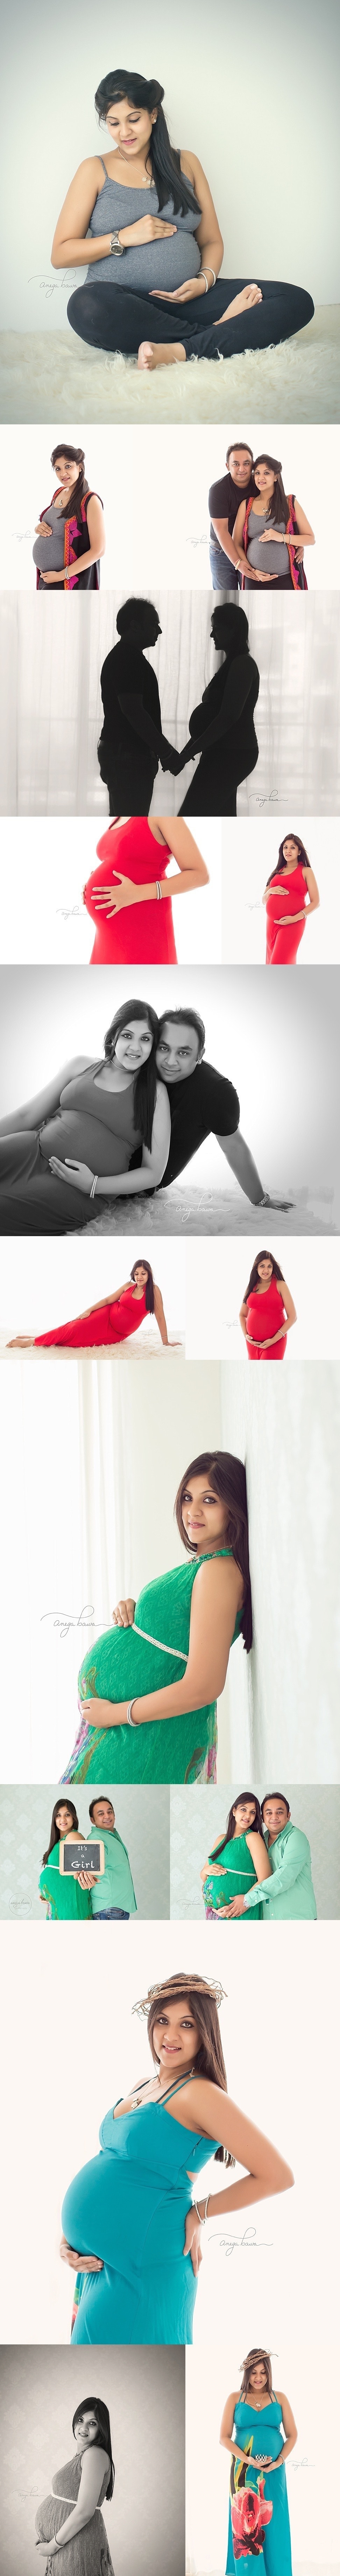 maternity_session_058b_pregnancy_photographer_in_delhi